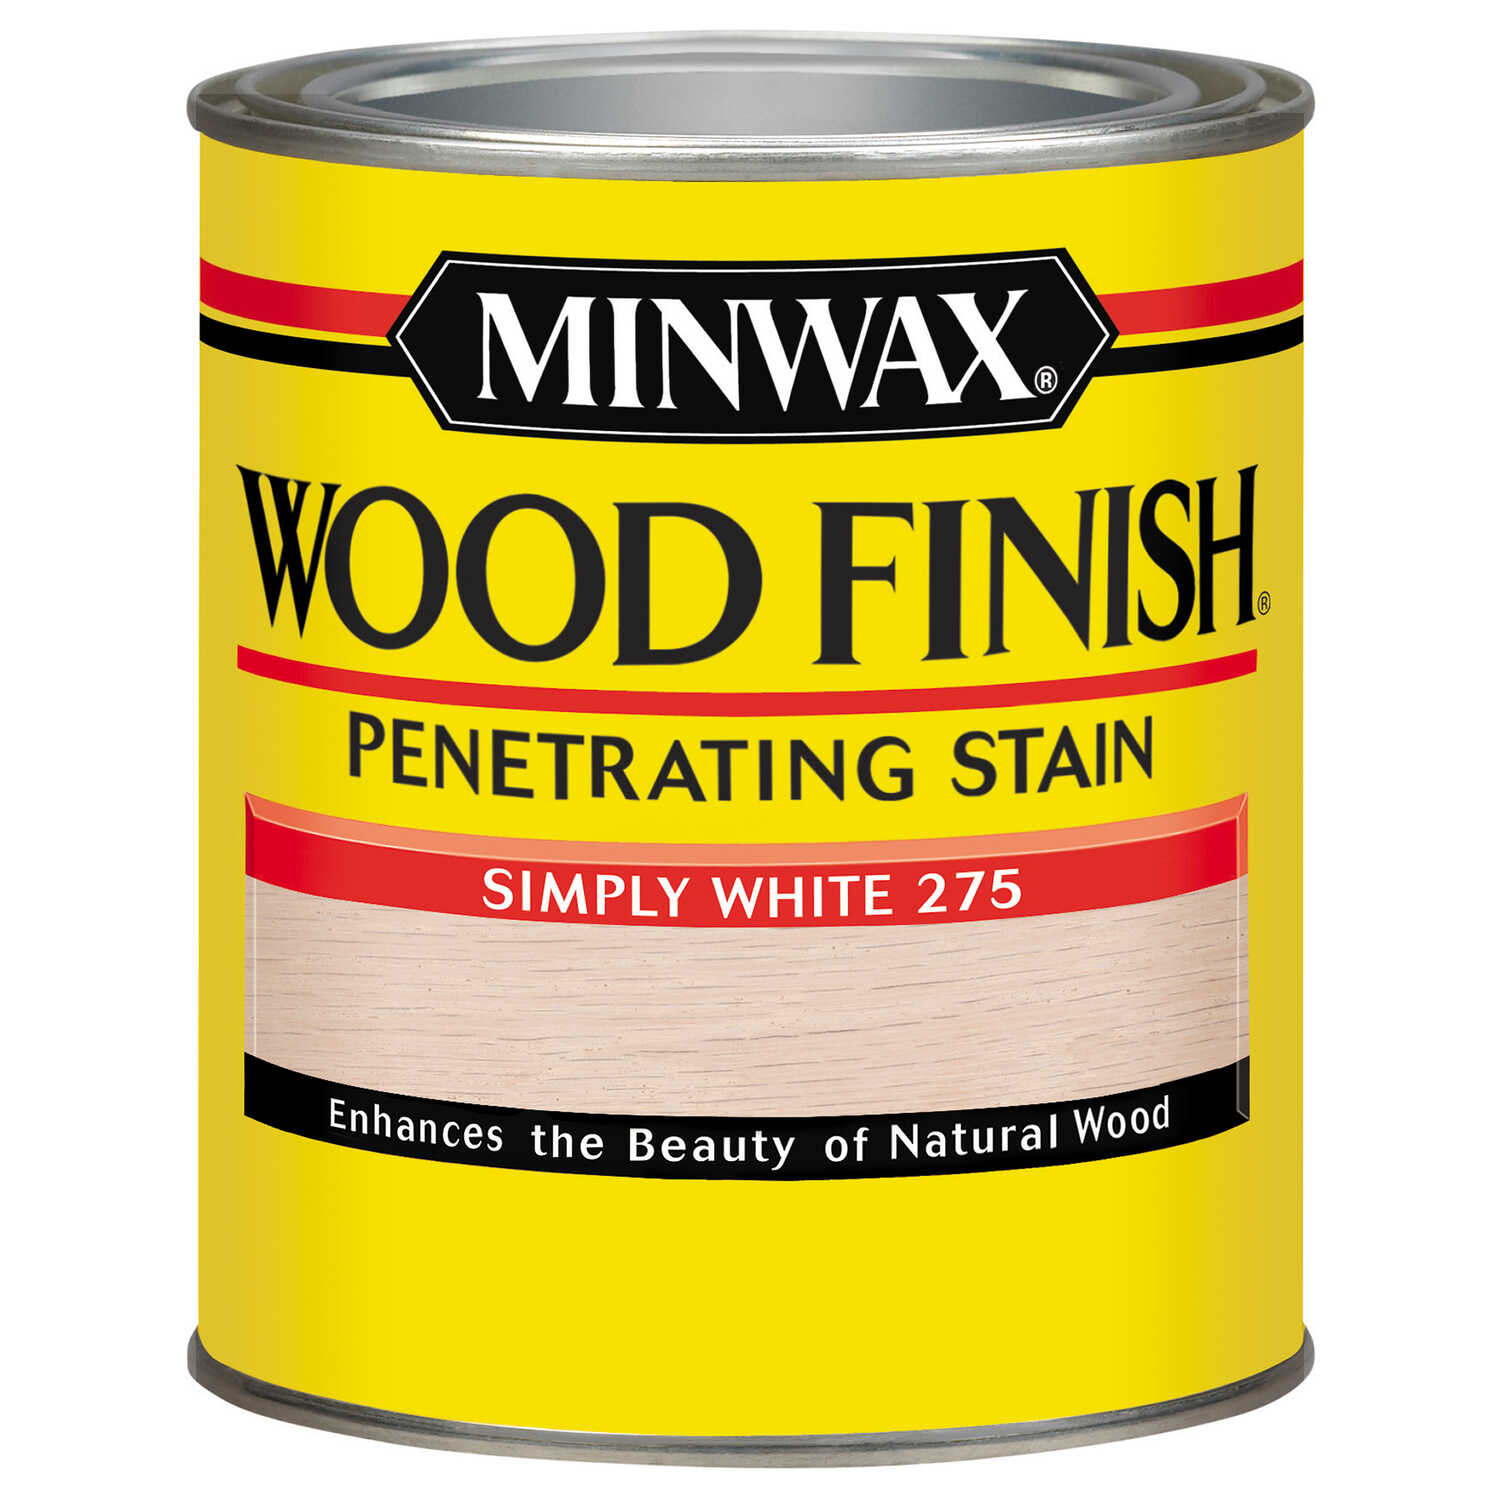 Minwax  Wood Finish  Semi-Transparent  Simply White  Oil-Based  Wood Stain  1 qt.